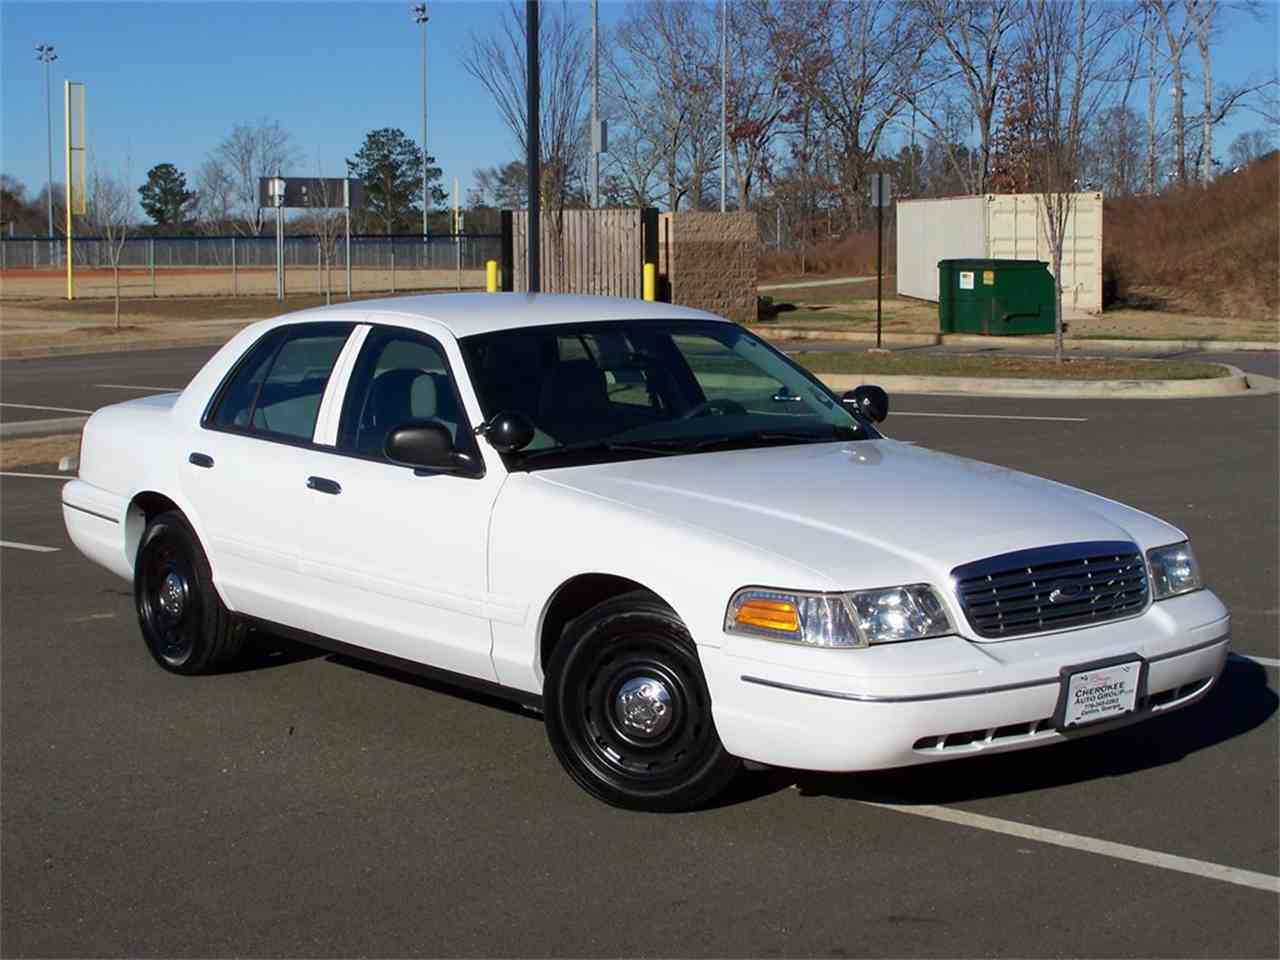 Ford Crown Victoria For Sale ClassicCarscom CC - 2003 crown victoria